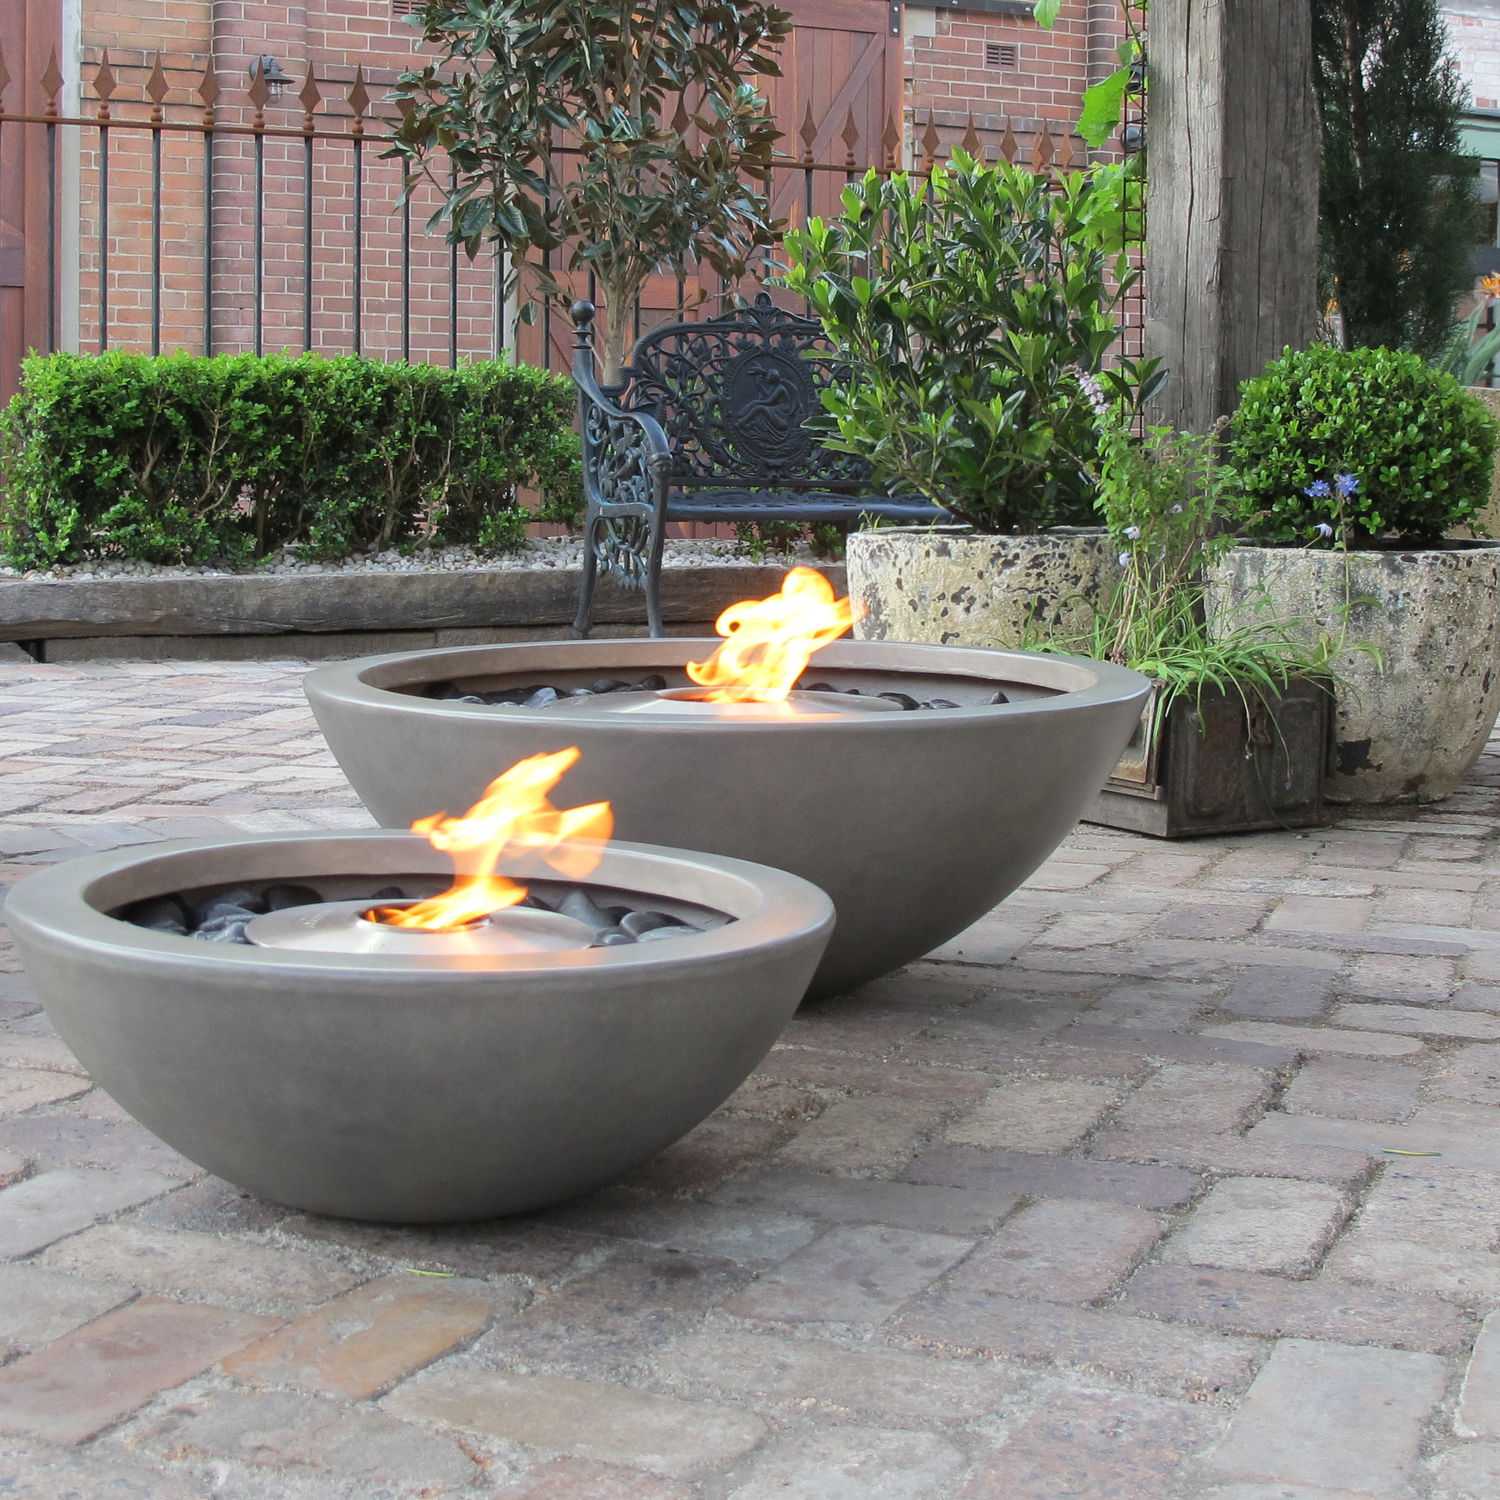 Bioethanol Fire Pit Stainless Steel Concrete Contemporary Mix By Marc Veenendaal